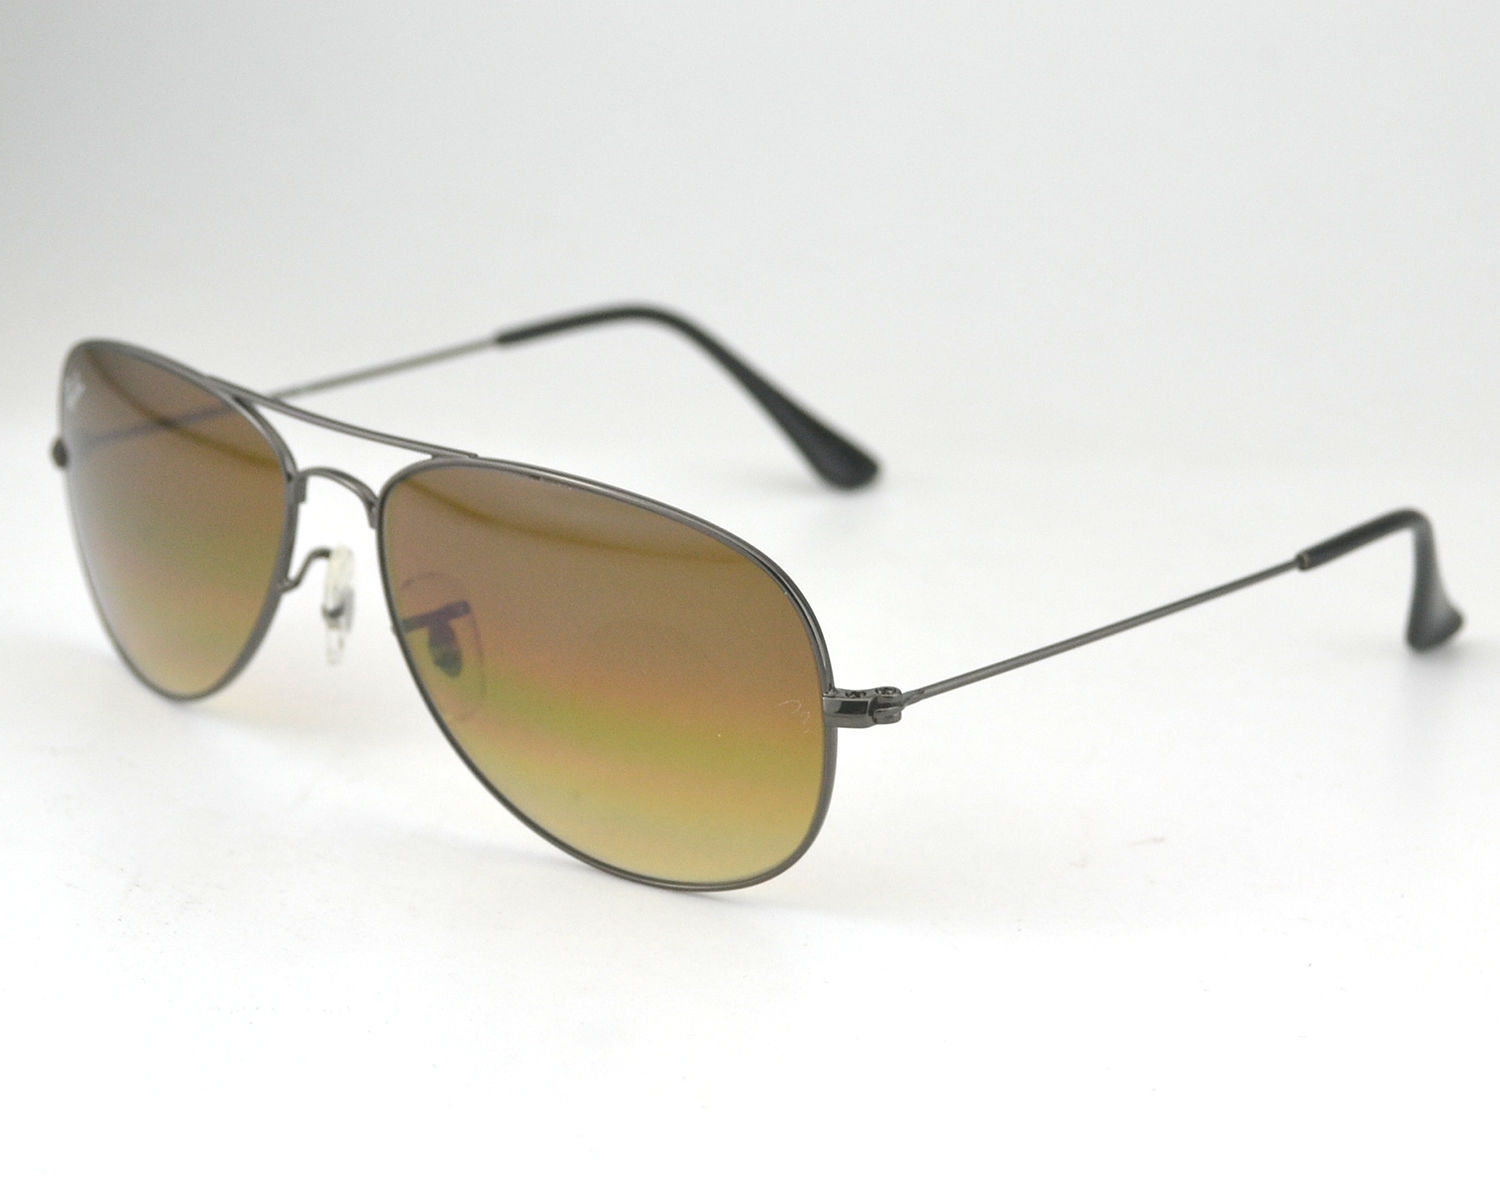 5861845df6 Ray-Ban RB3362 Cockpit 004 51 Gunmetal Frame Brown Glass Lens Male  Sunglasses 56mm